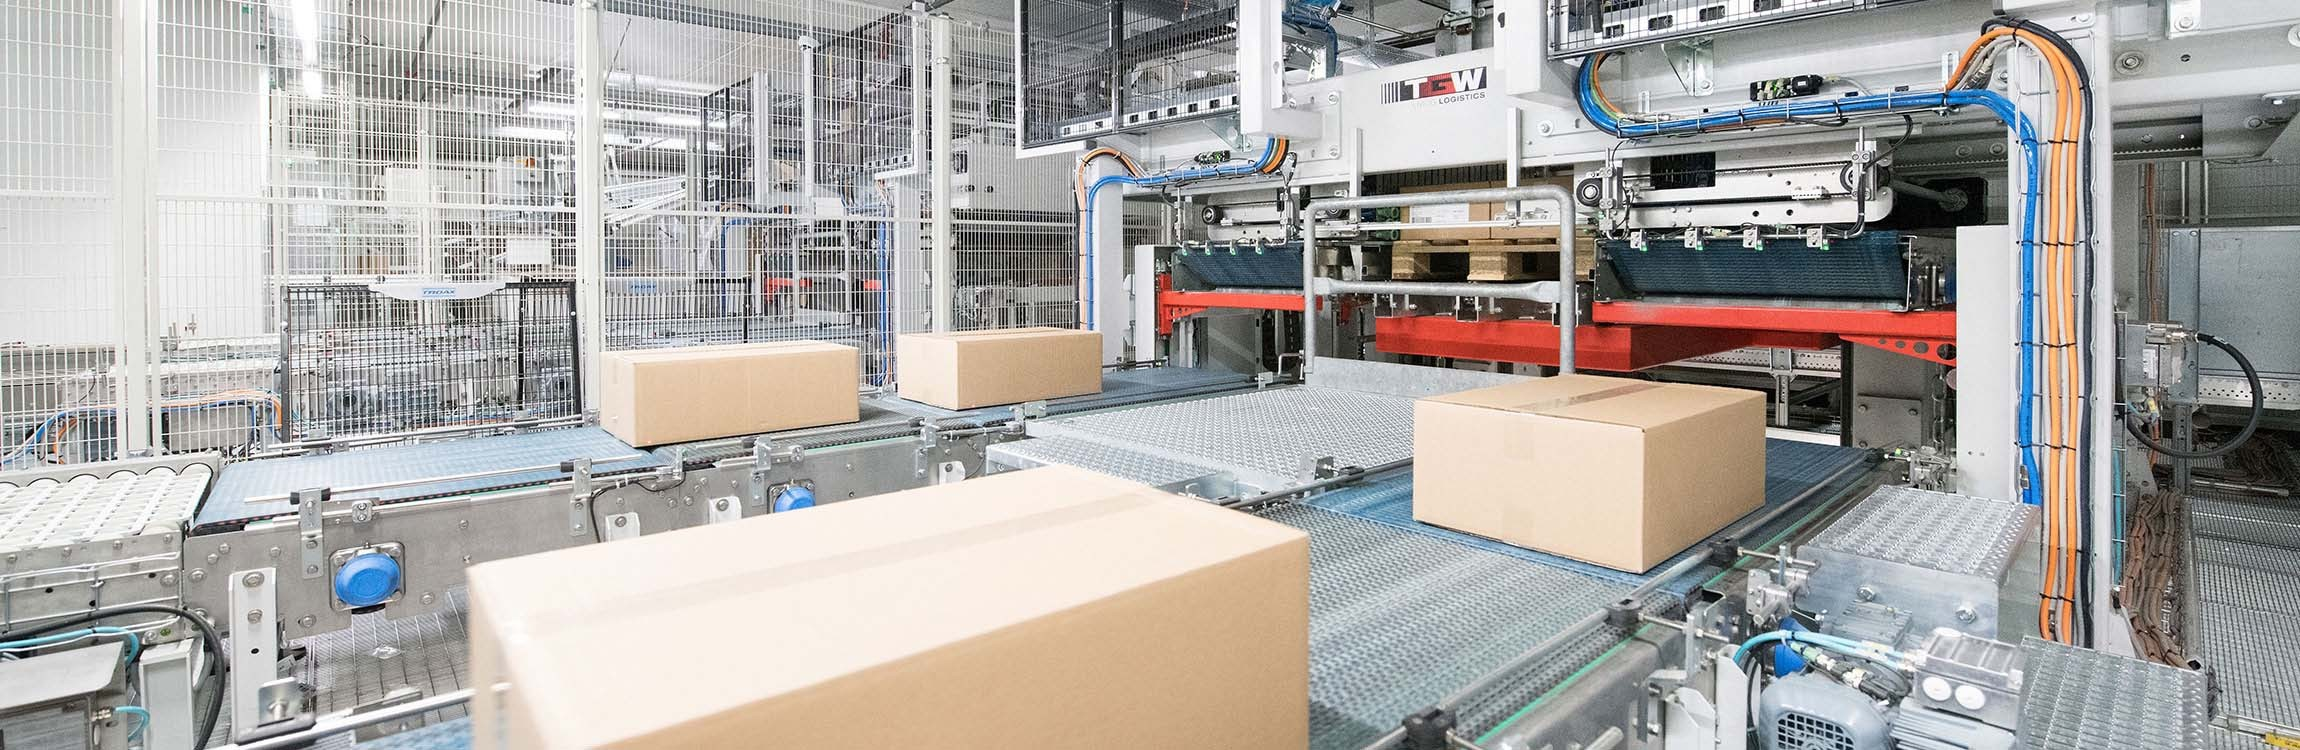 The fast, reliable and versatile intralogistics solution from TGW.